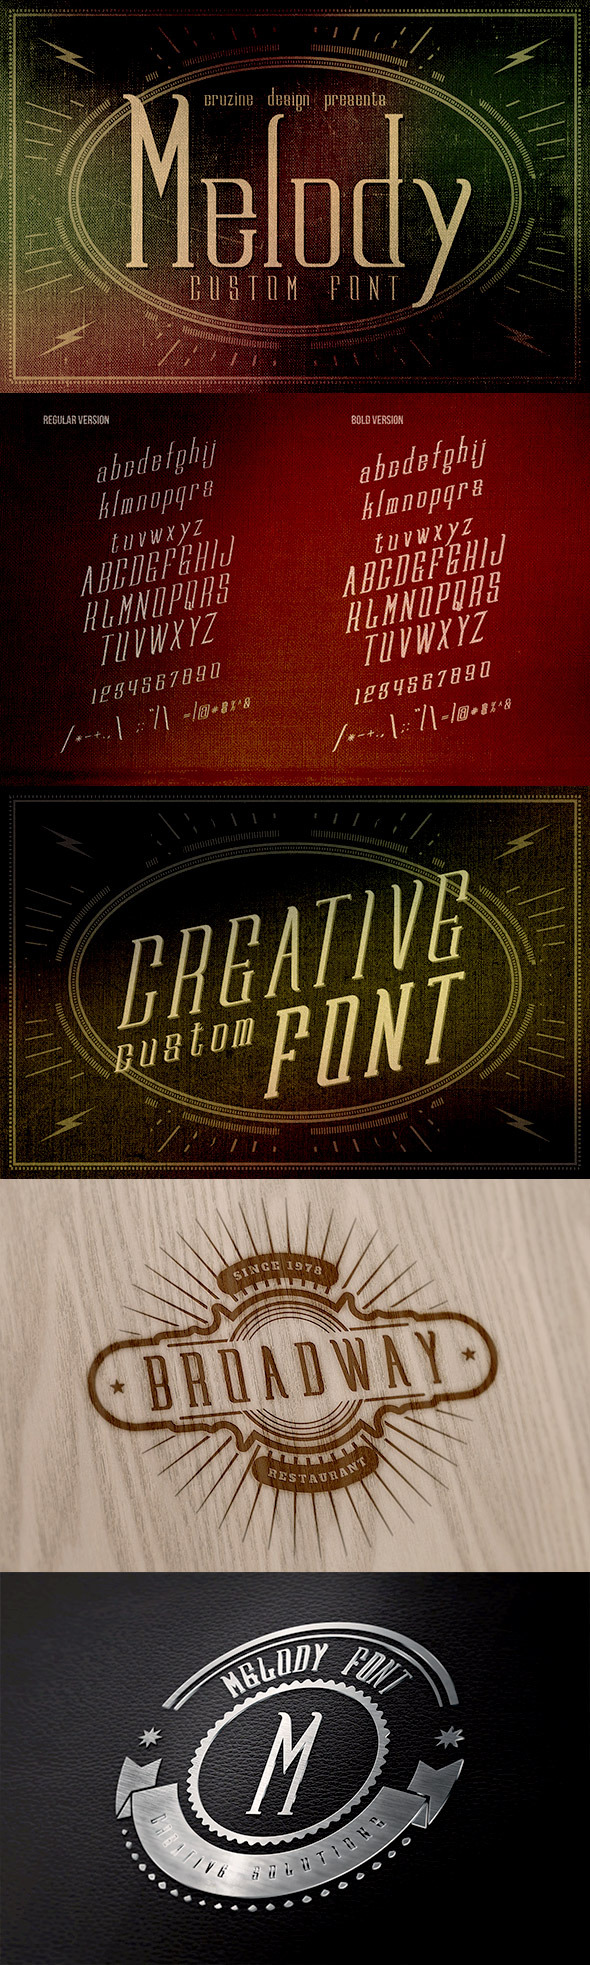 GraphicRiver Melody Custom Font 8924021